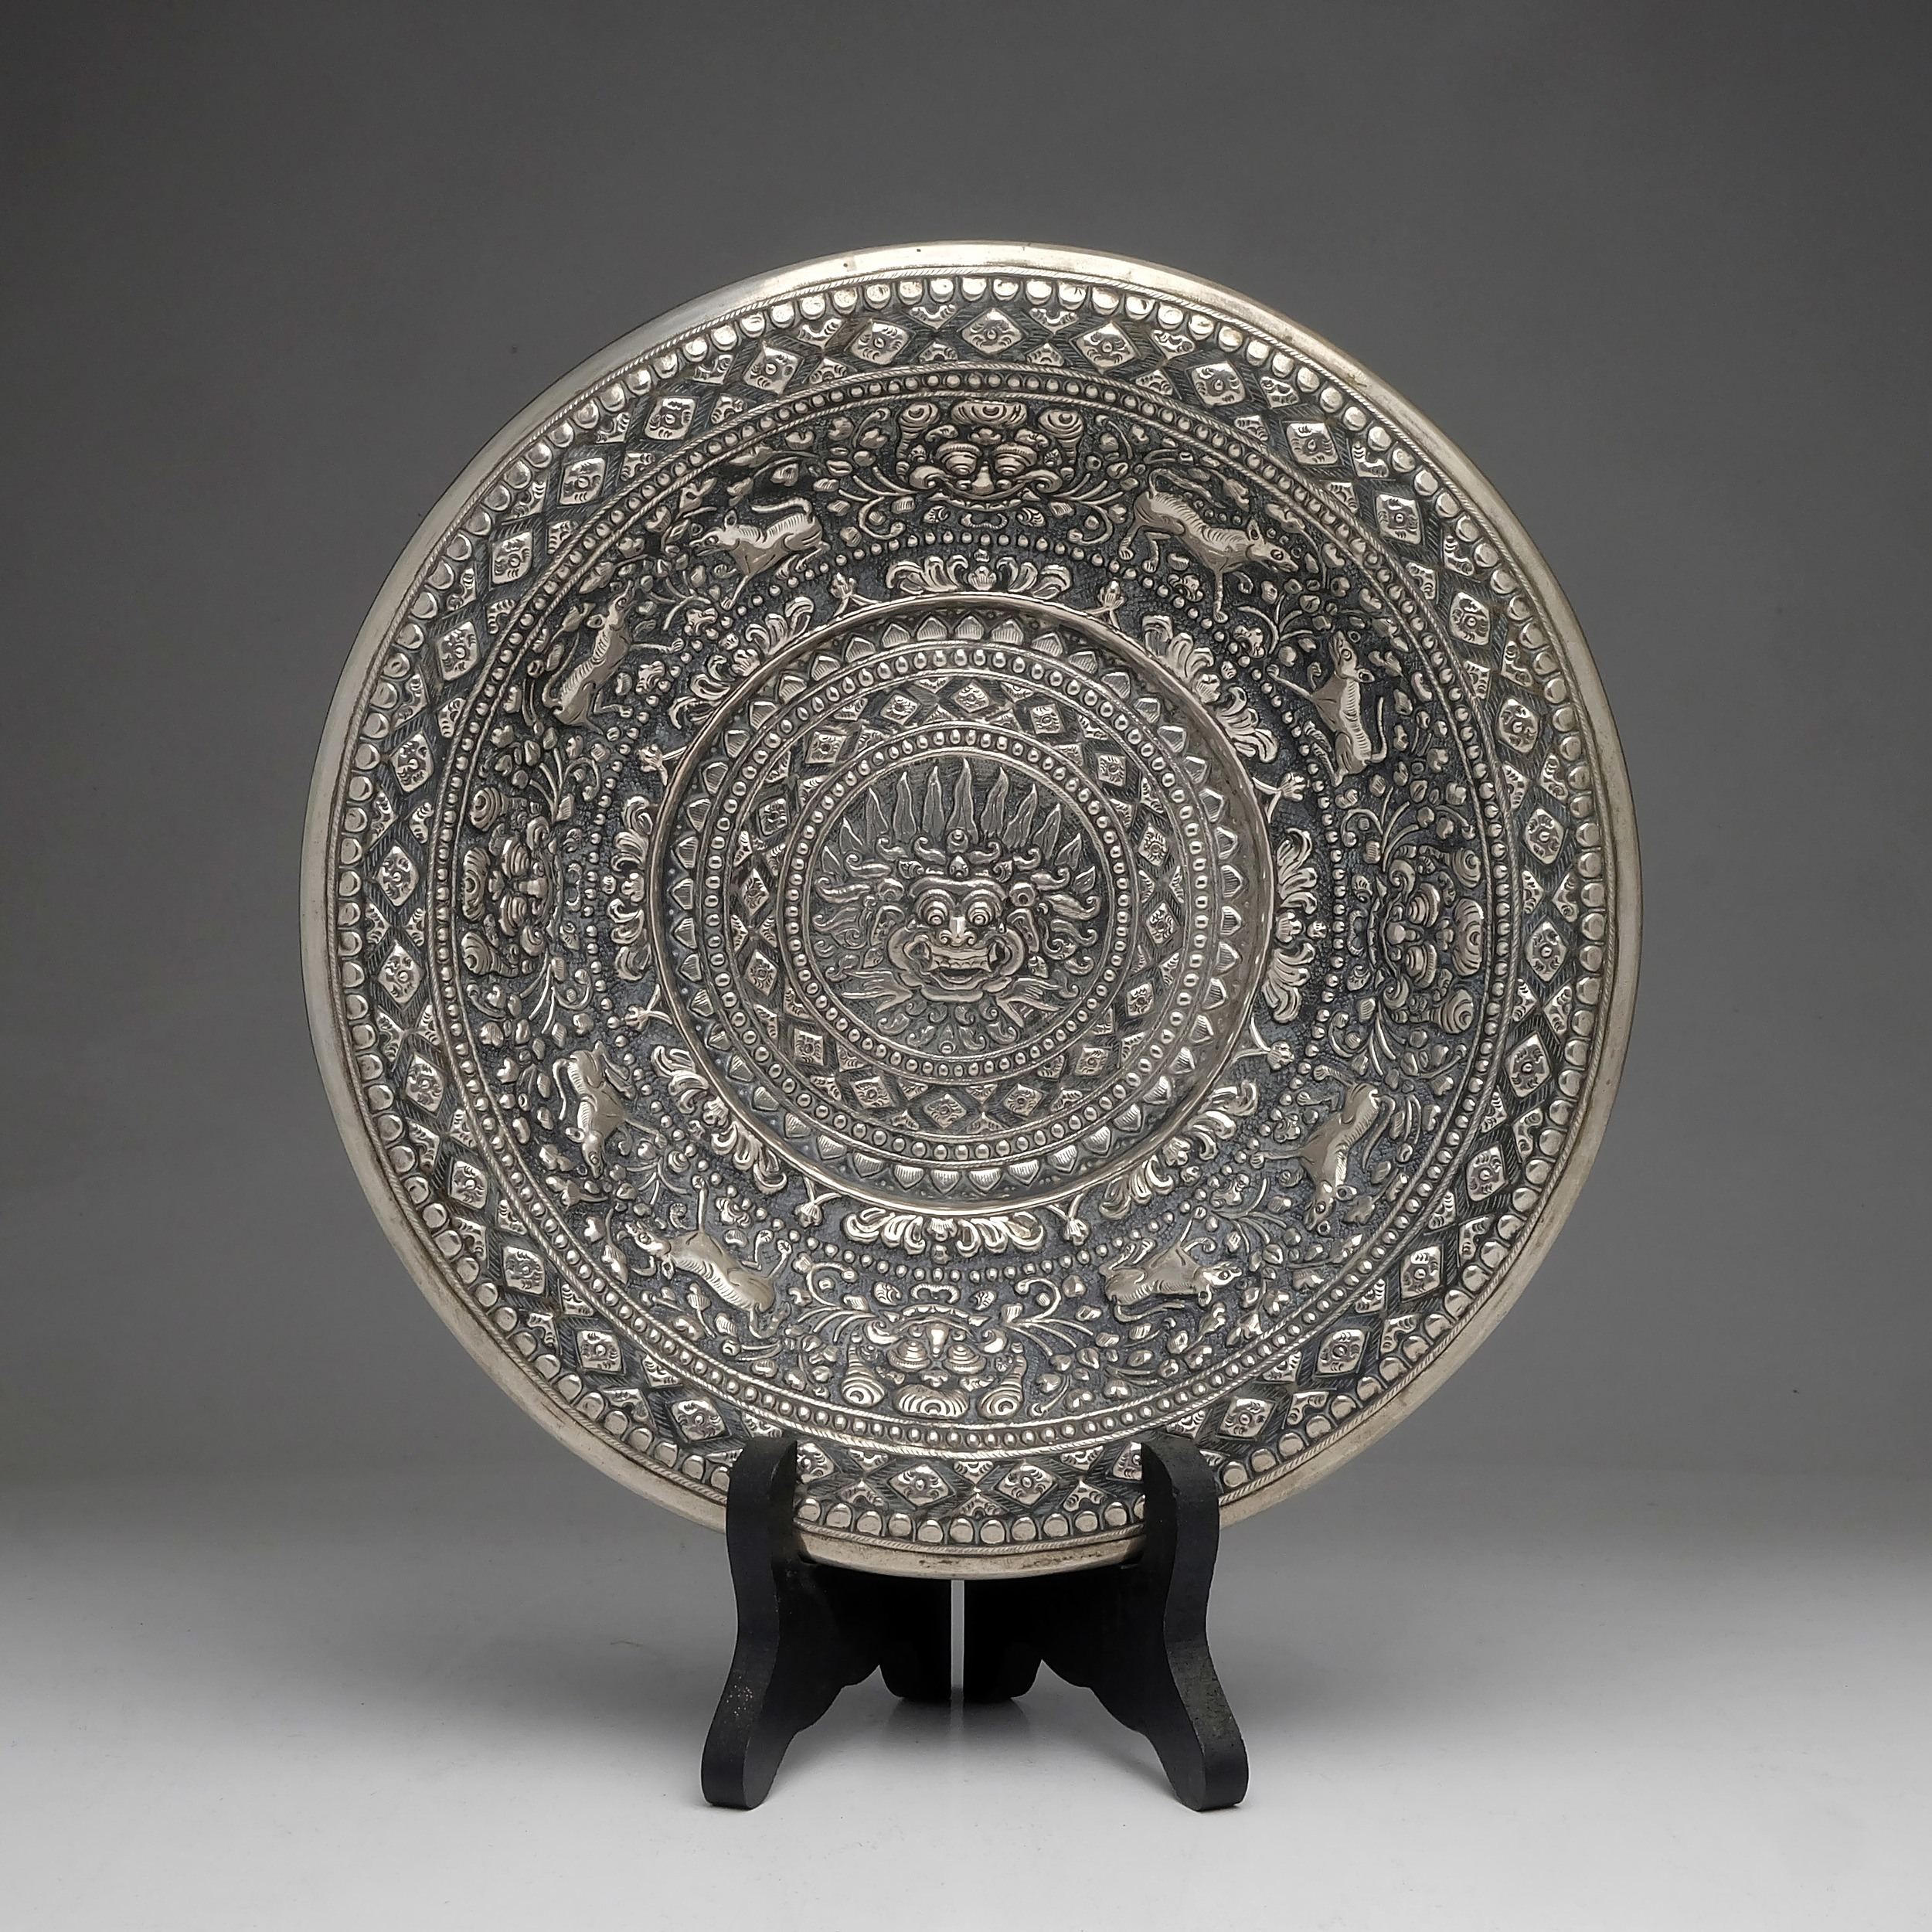 'Burmese Repousse Silver Bowl With Centralized Image of Barong and Hindu Imagery'